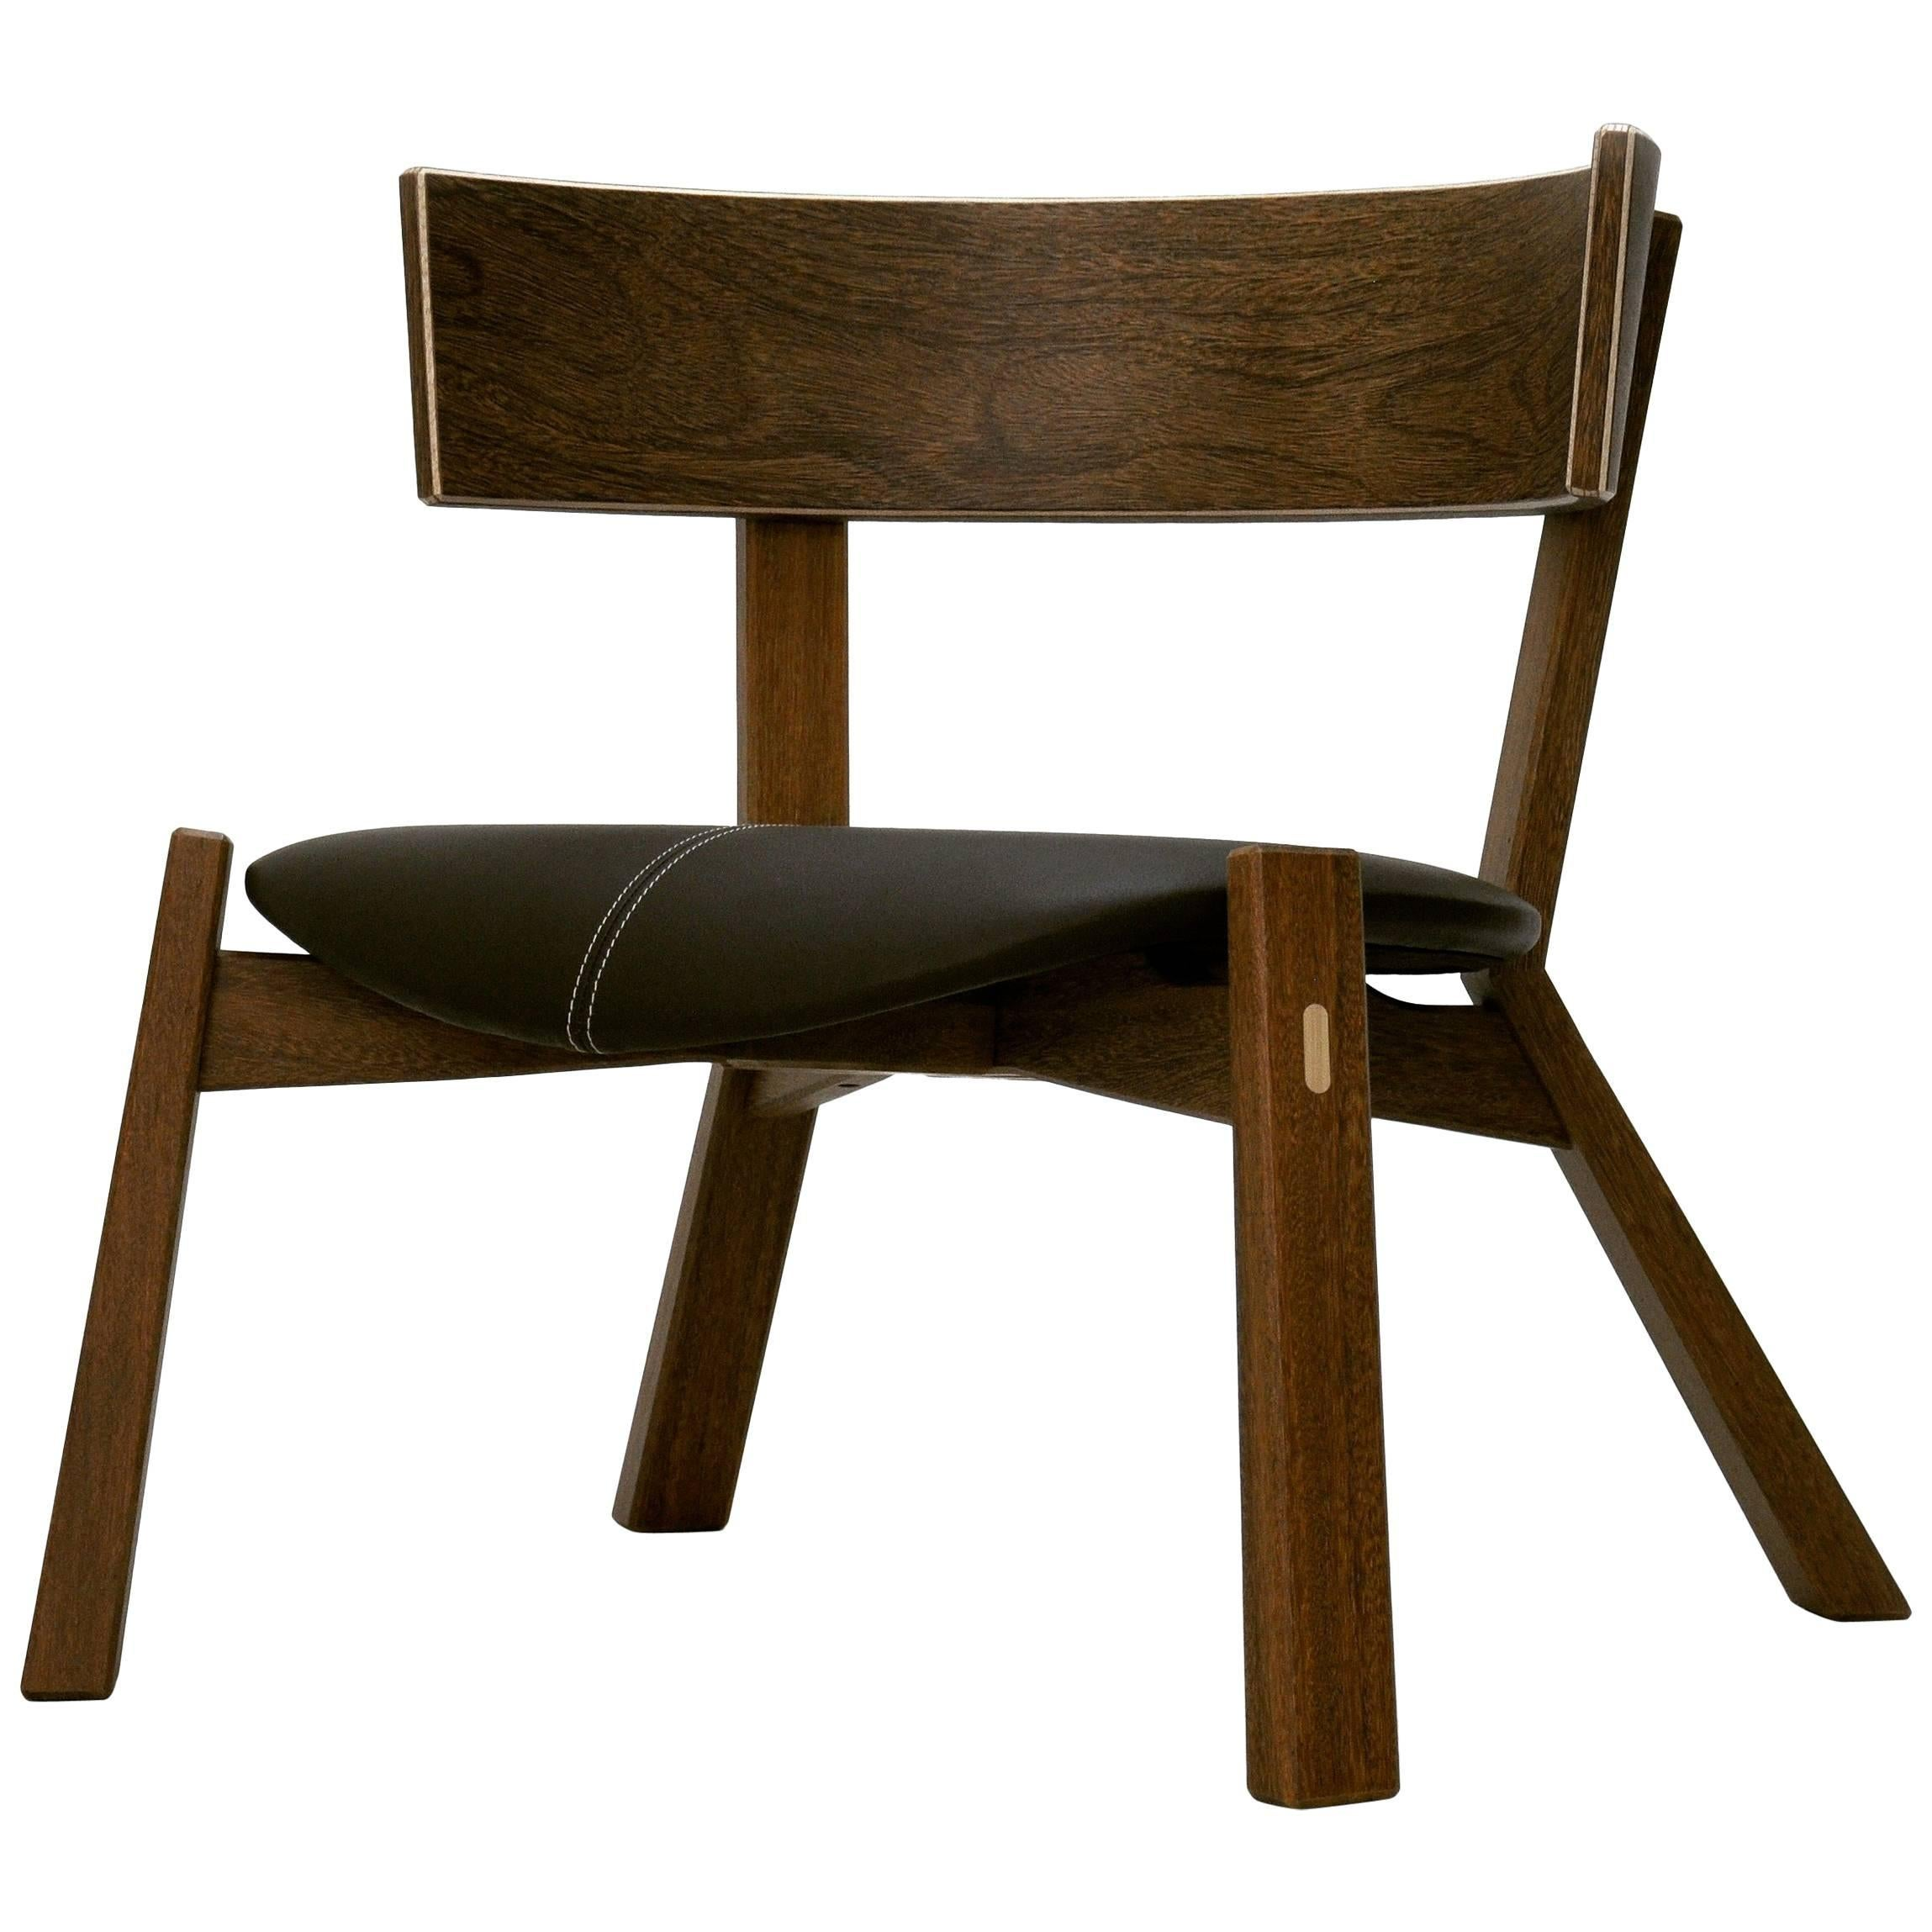 Armchair Toro On Tropical Brazilian Hardwood And Natural Leather For Sale